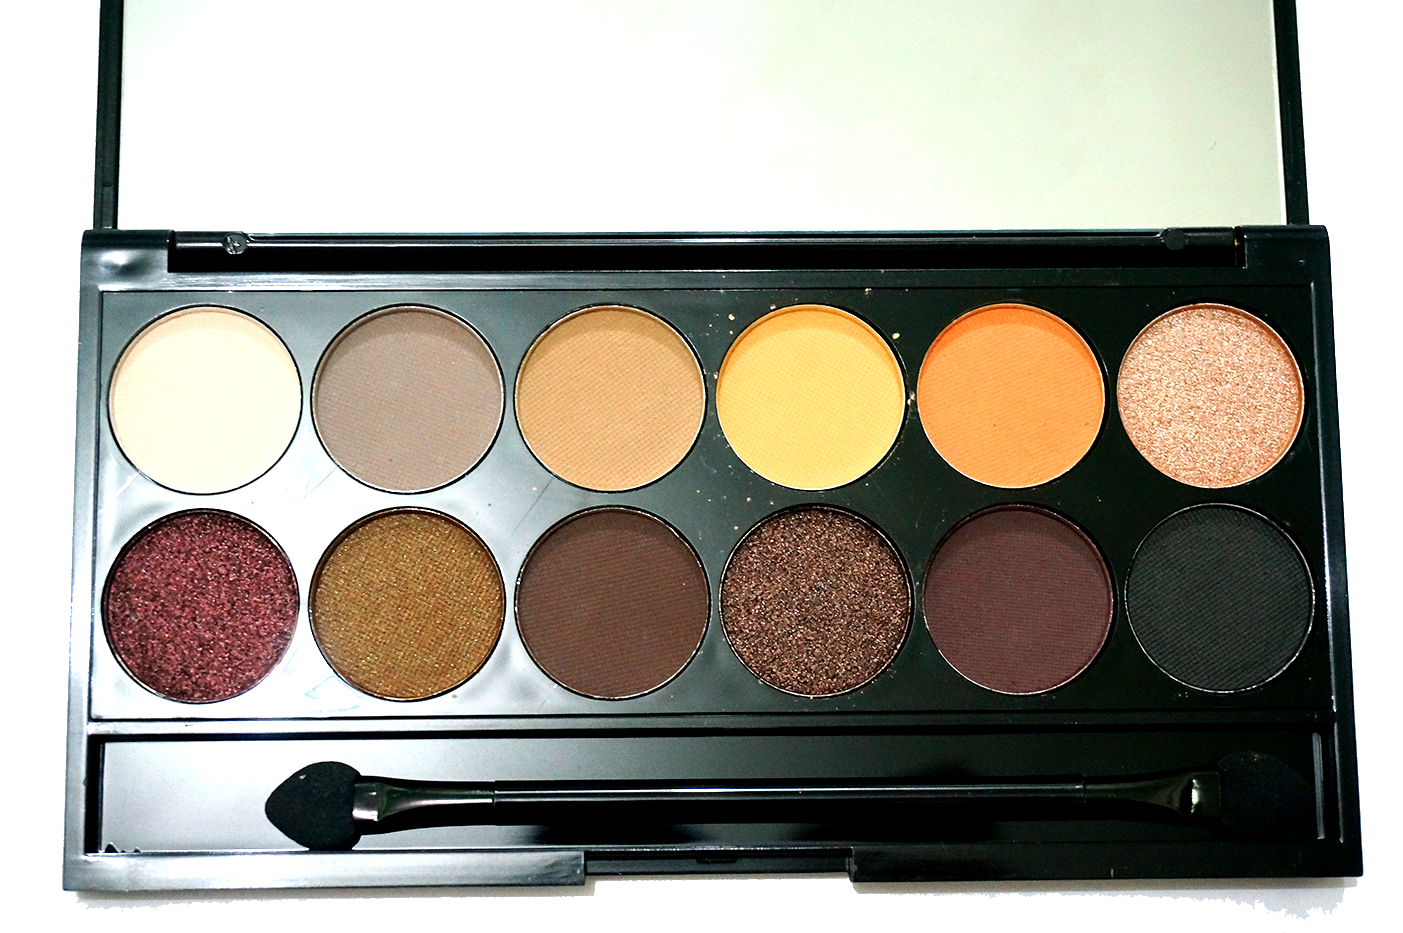 Sleek I Divine Au Naturale Palette Swatch And Review Stella Wardah Make Up Kit Special Edition Closer Look Of The Color It Didnt This Vibrant In Real Life Colors Are A Little More Desaturated Than Photographs Obviously Due To Lighting